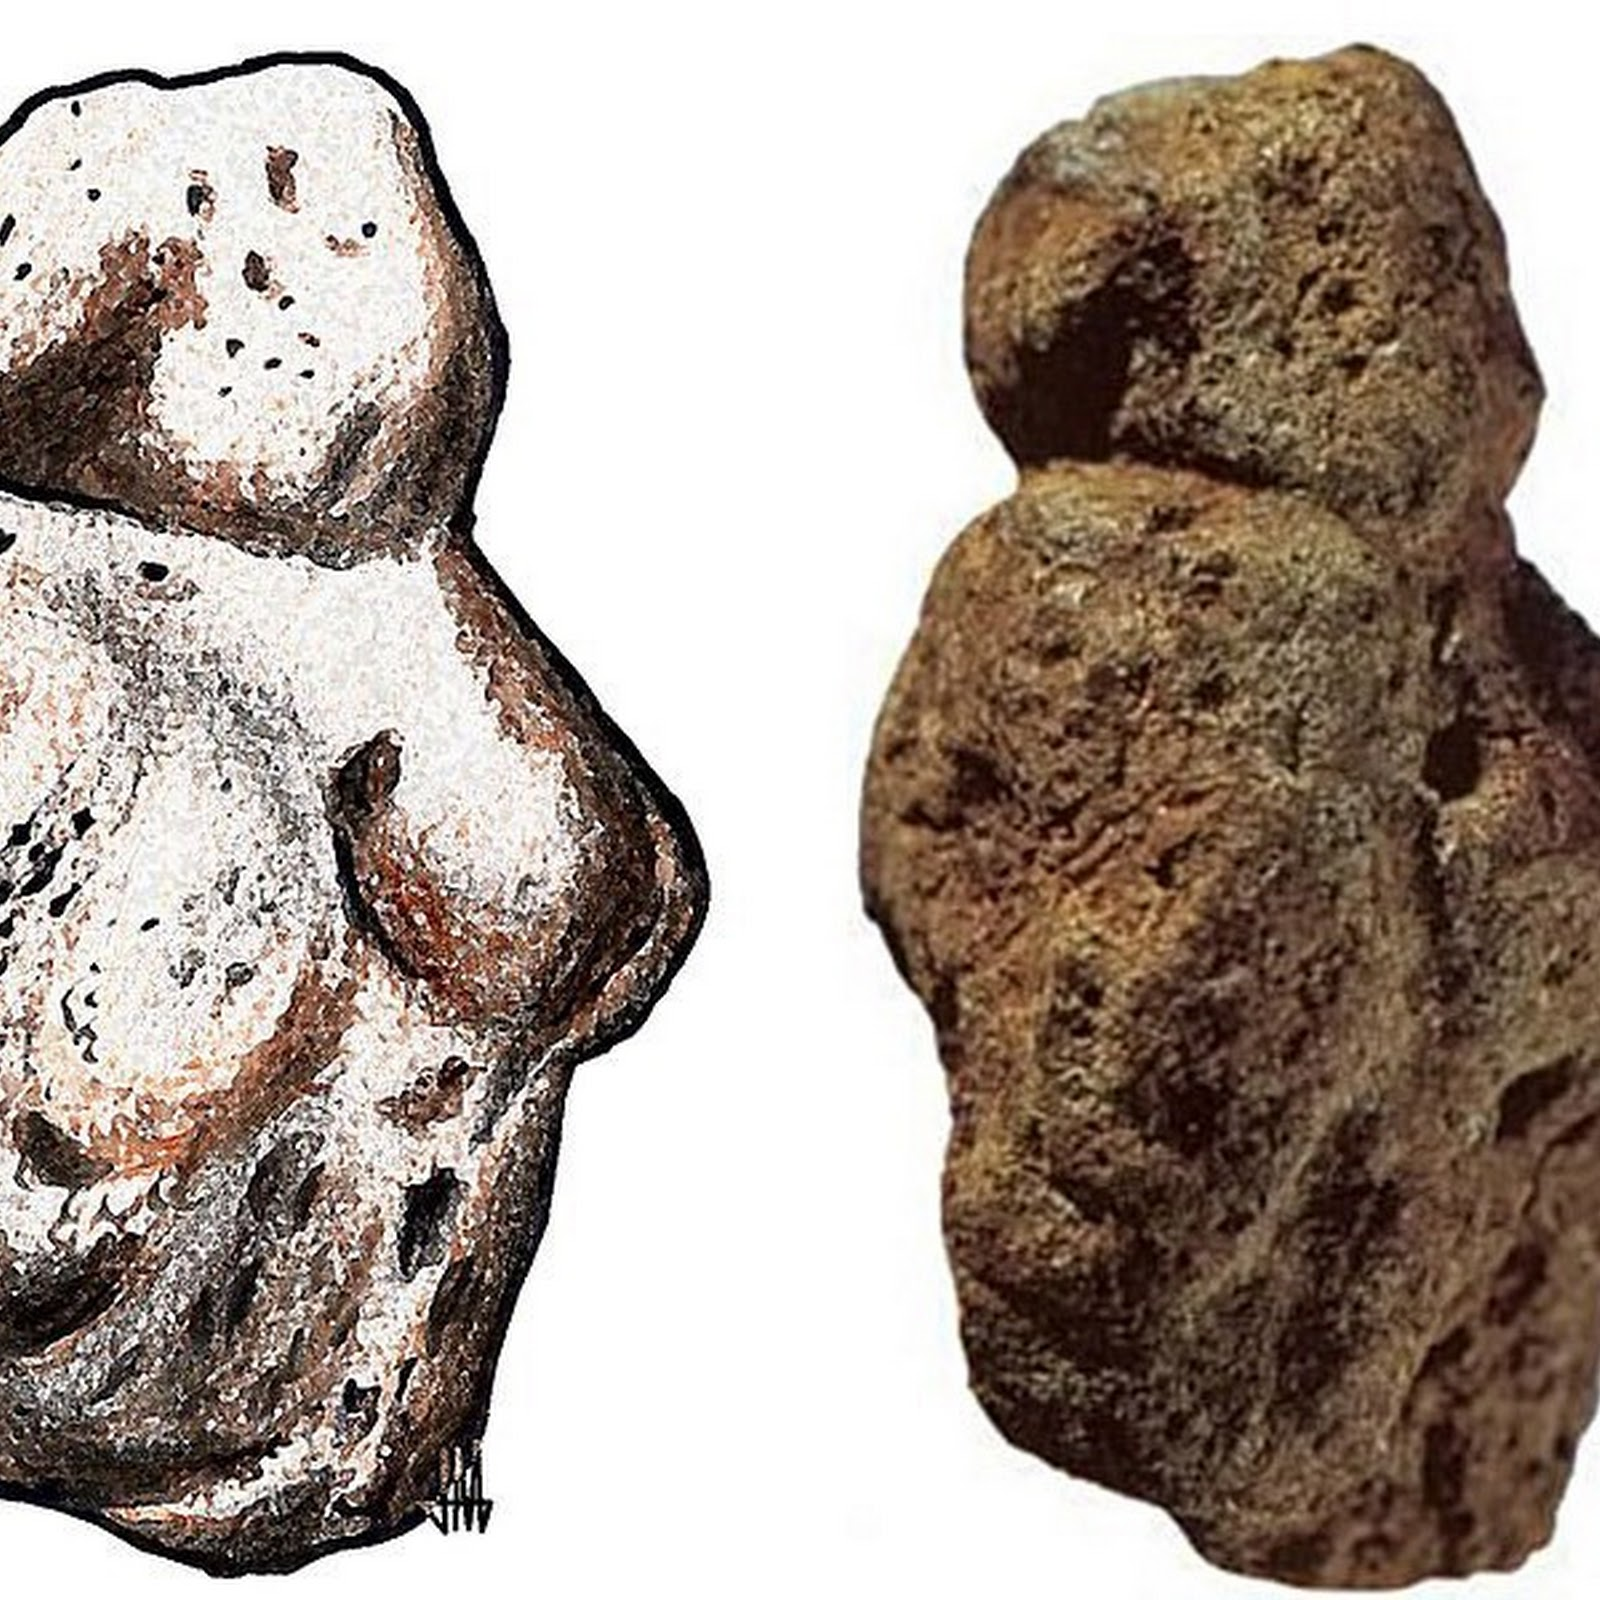 Venus of Berekhat Ram: The World's Oldest Piece of Art That Predates Humans